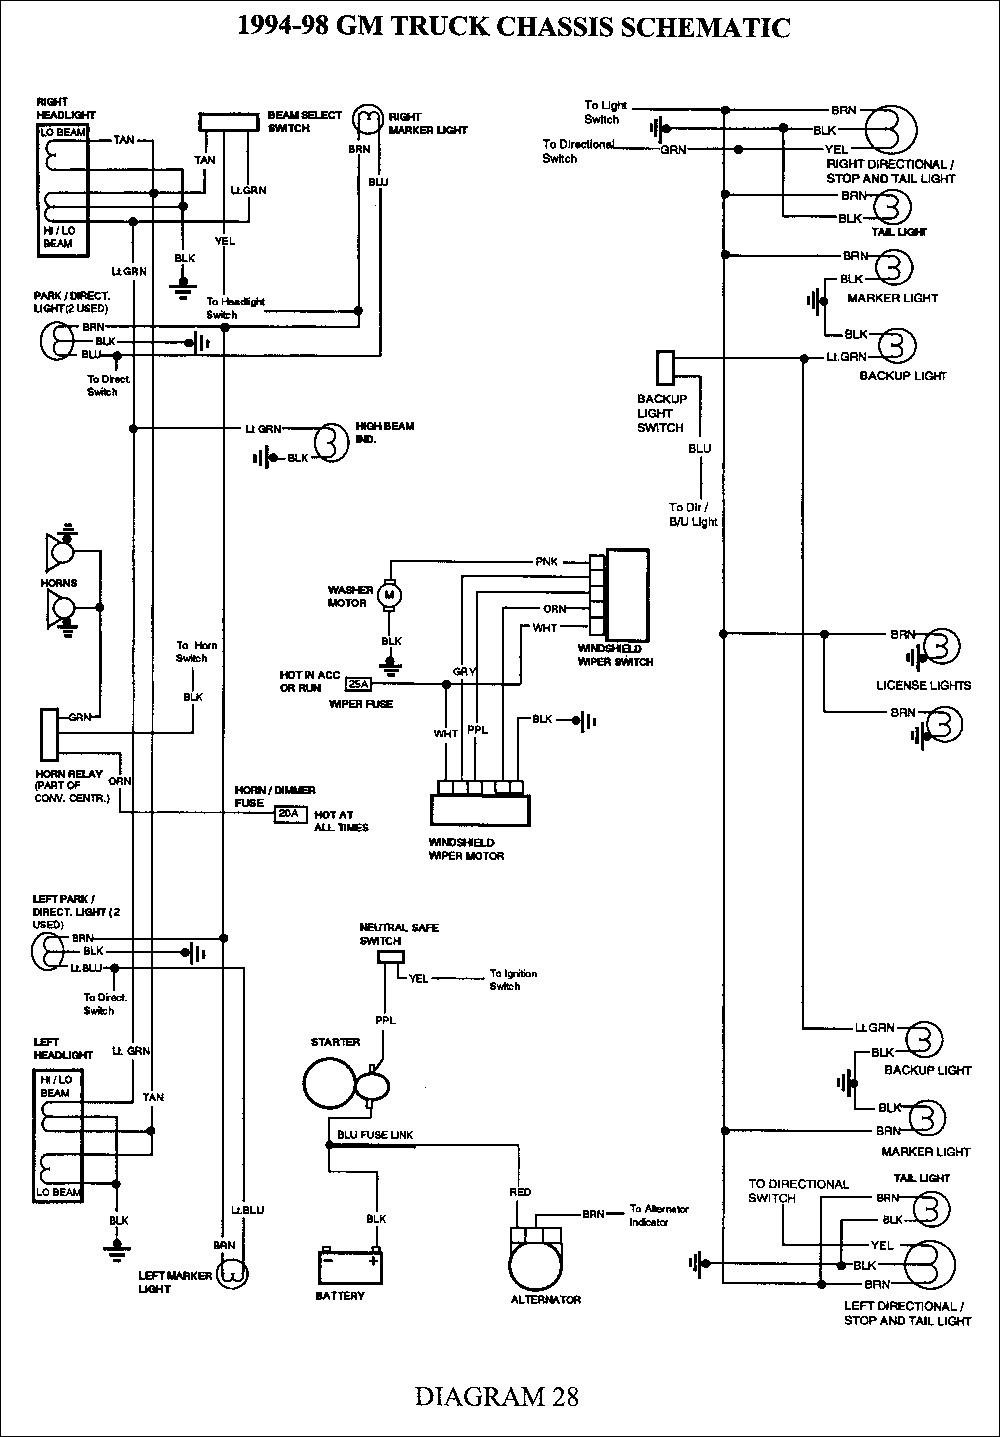 2000 gmc sierra trailer wiring diagram schematic another wiring rh  benpaterson co uk 2002 gmc sierra 1500 fuel pump wiring diagram 2002 gmc  sierra 1500 ...